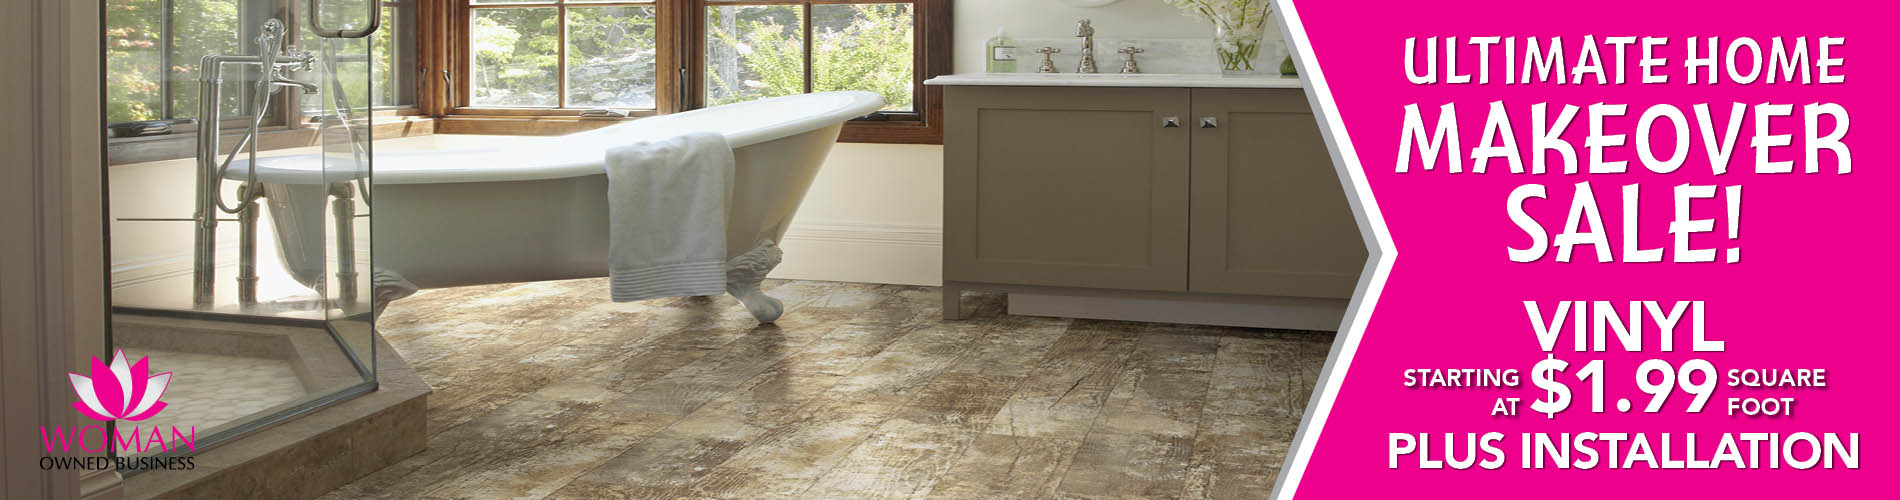 Vinyl starting at $1.99 sq.ft. plus installation during the Home Makeover Sale at Carpets & Us Floors To Go Design Center